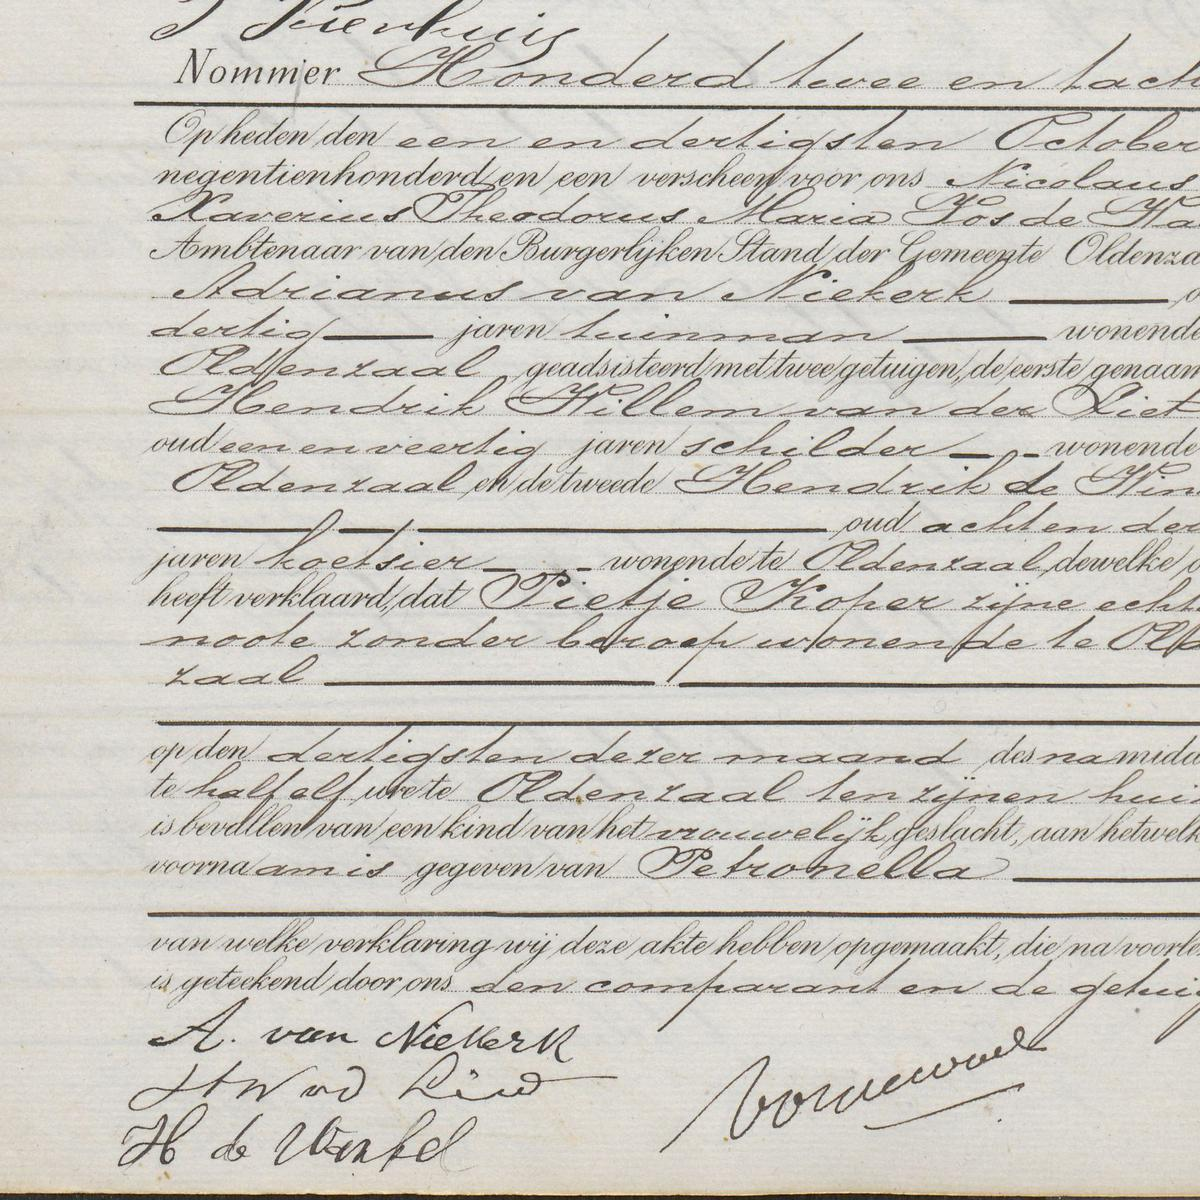 Civil registry of births, Oldenzaal, 1901, record 182